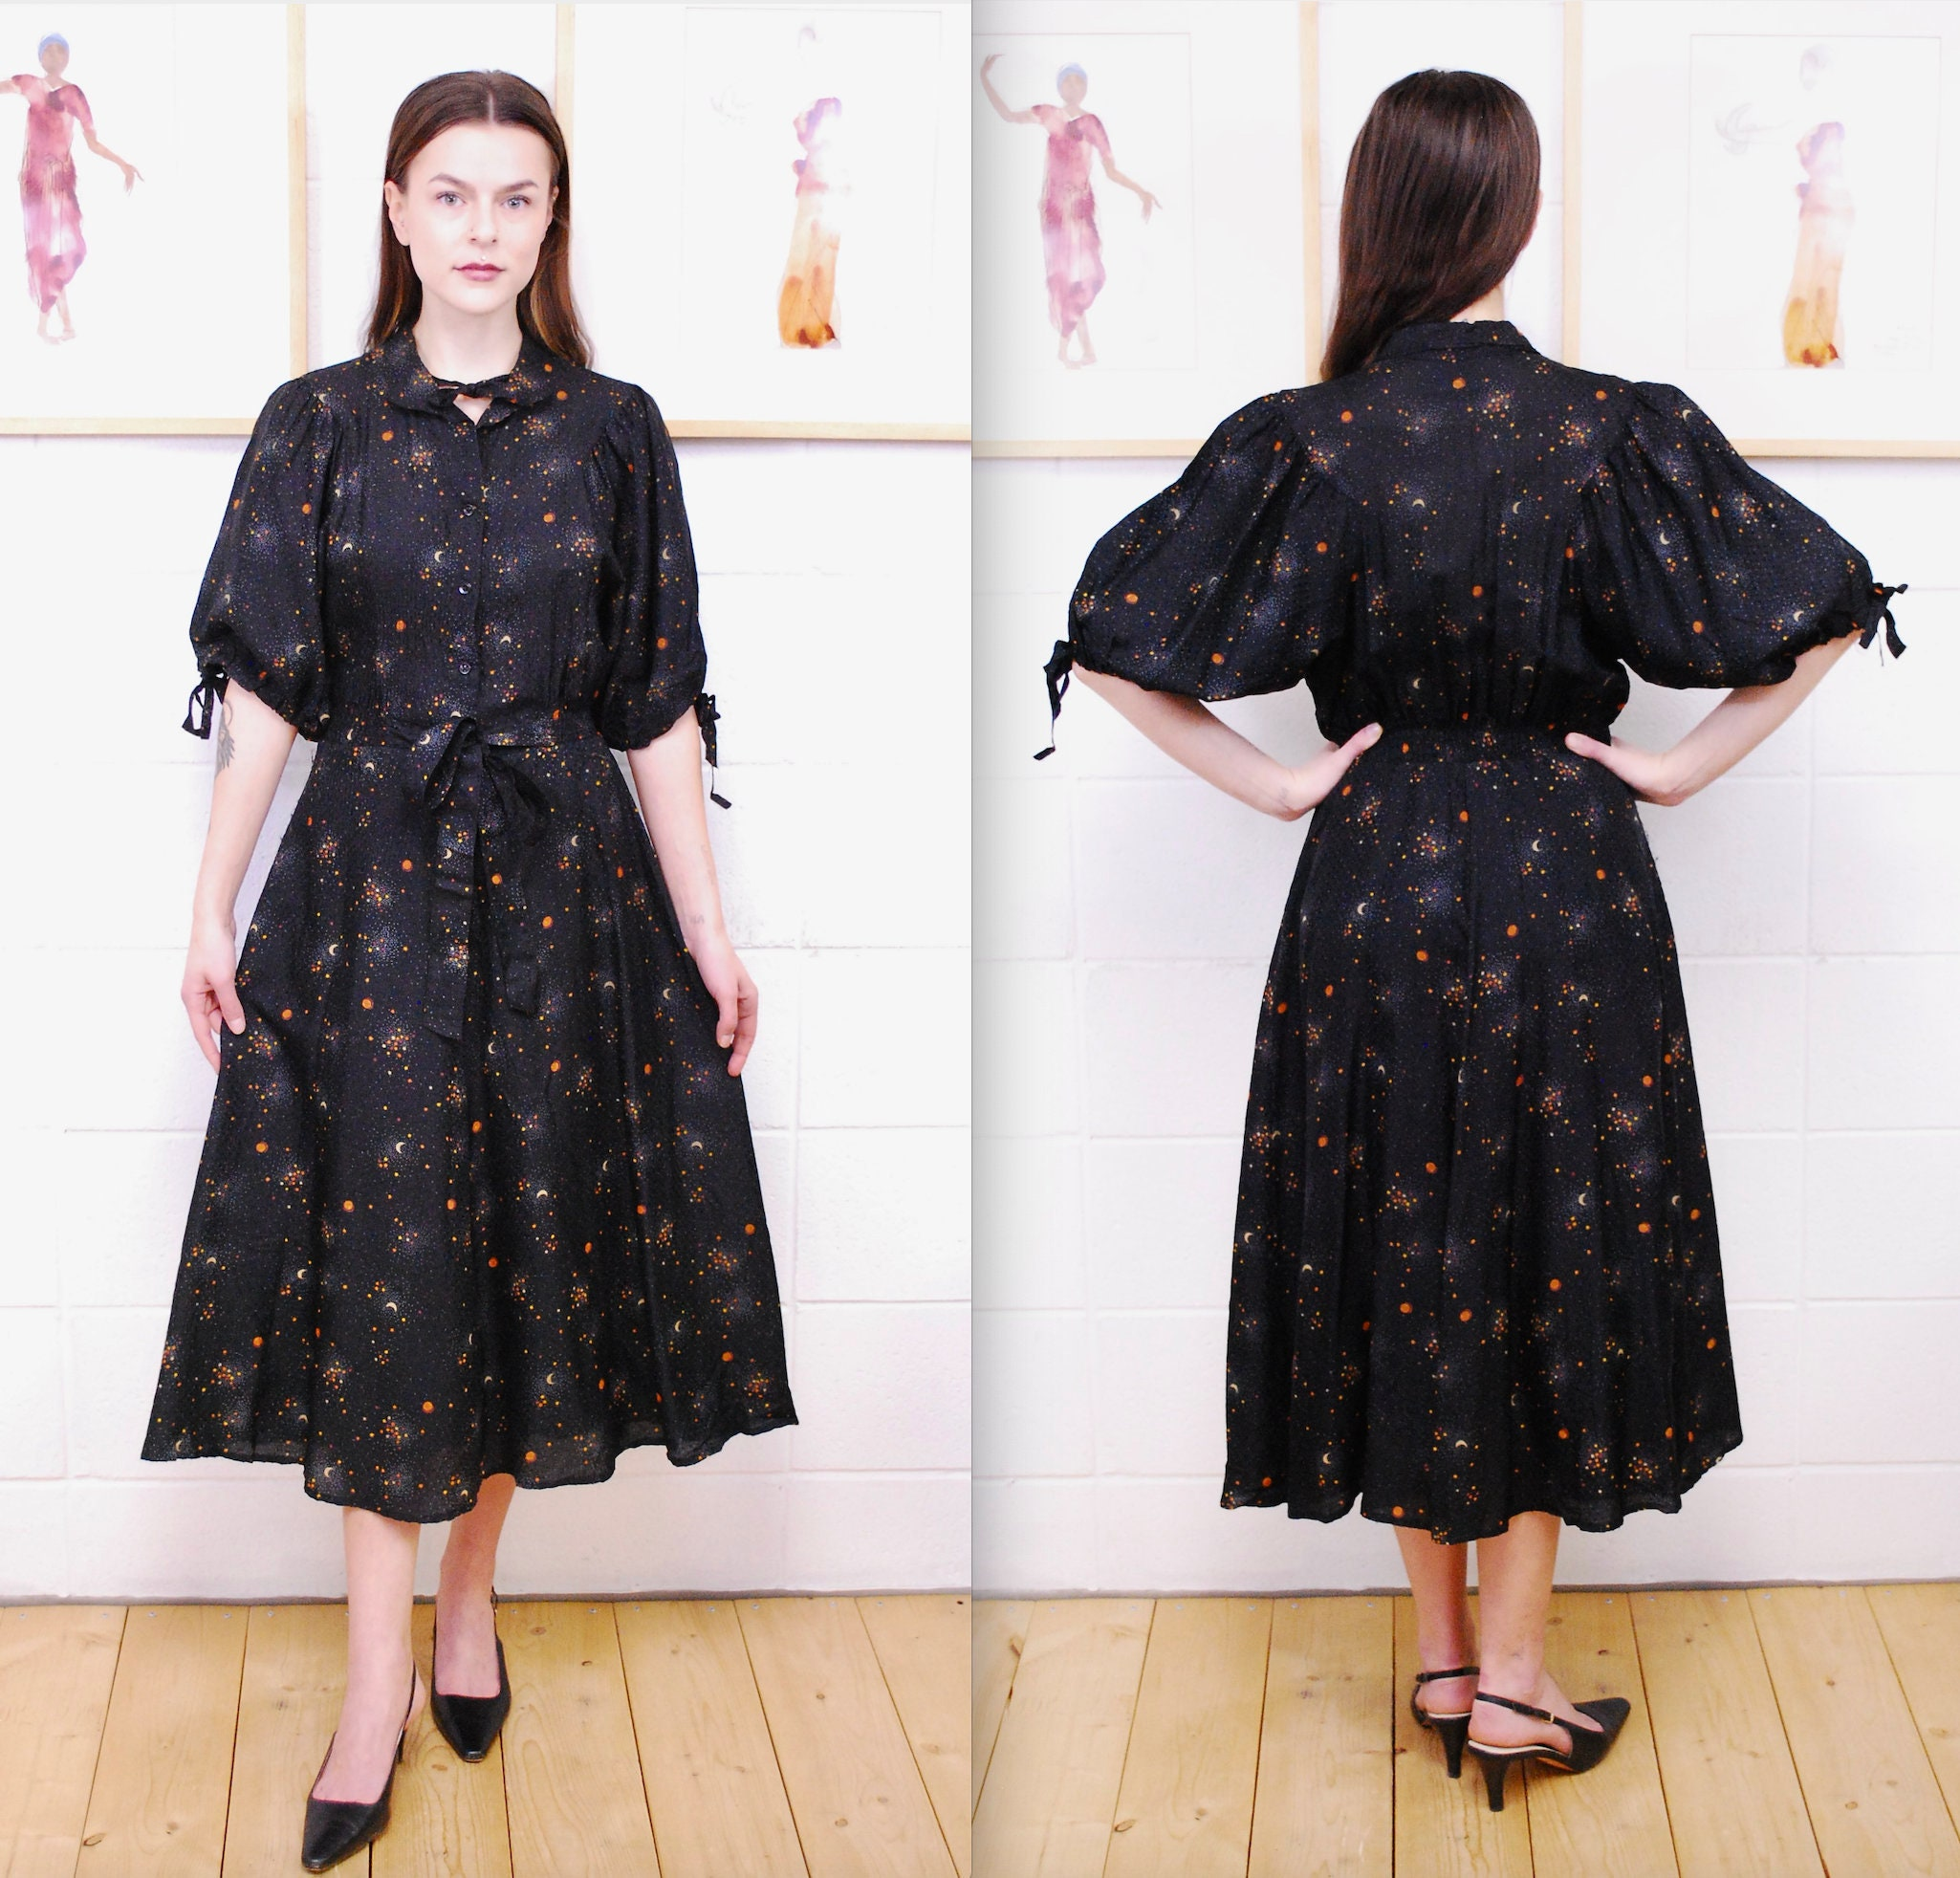 80s Dresses | Casual to Party Dresses 1980s Black Cosmic Print Dress With Super Cute Tie Collar  SleevesRare Collectable Retro Curiosity Inc $27.00 AT vintagedancer.com